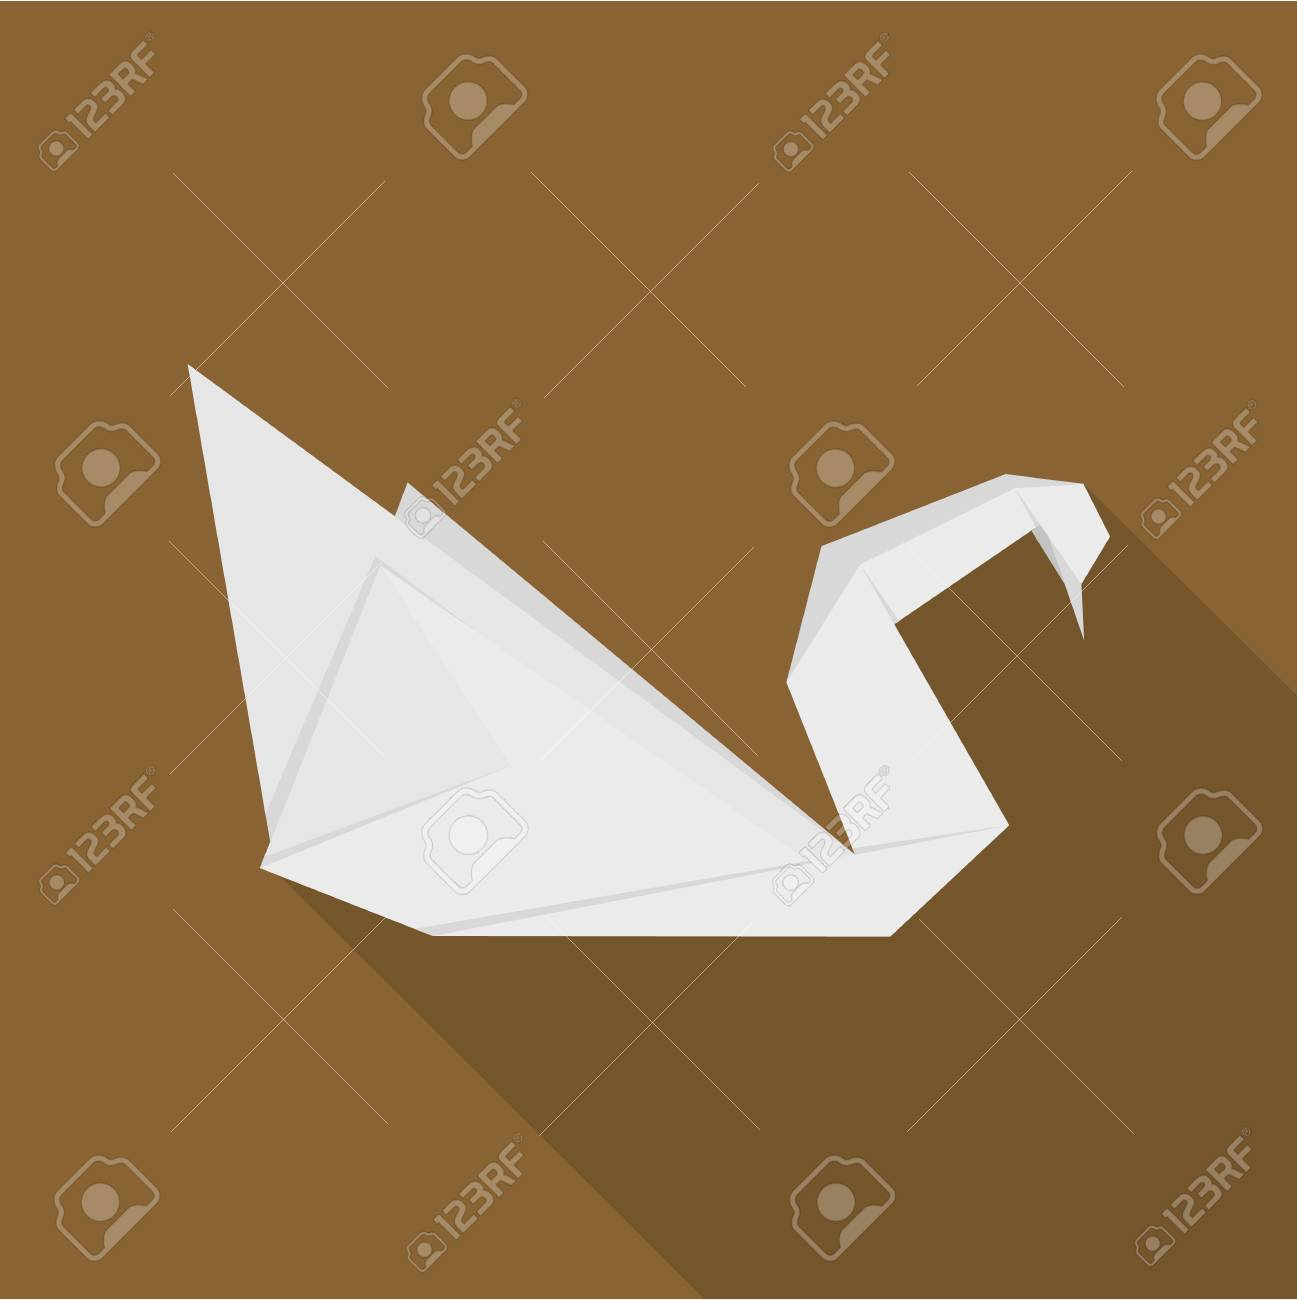 Origami Swan Icon Flat Illustration Of Vector